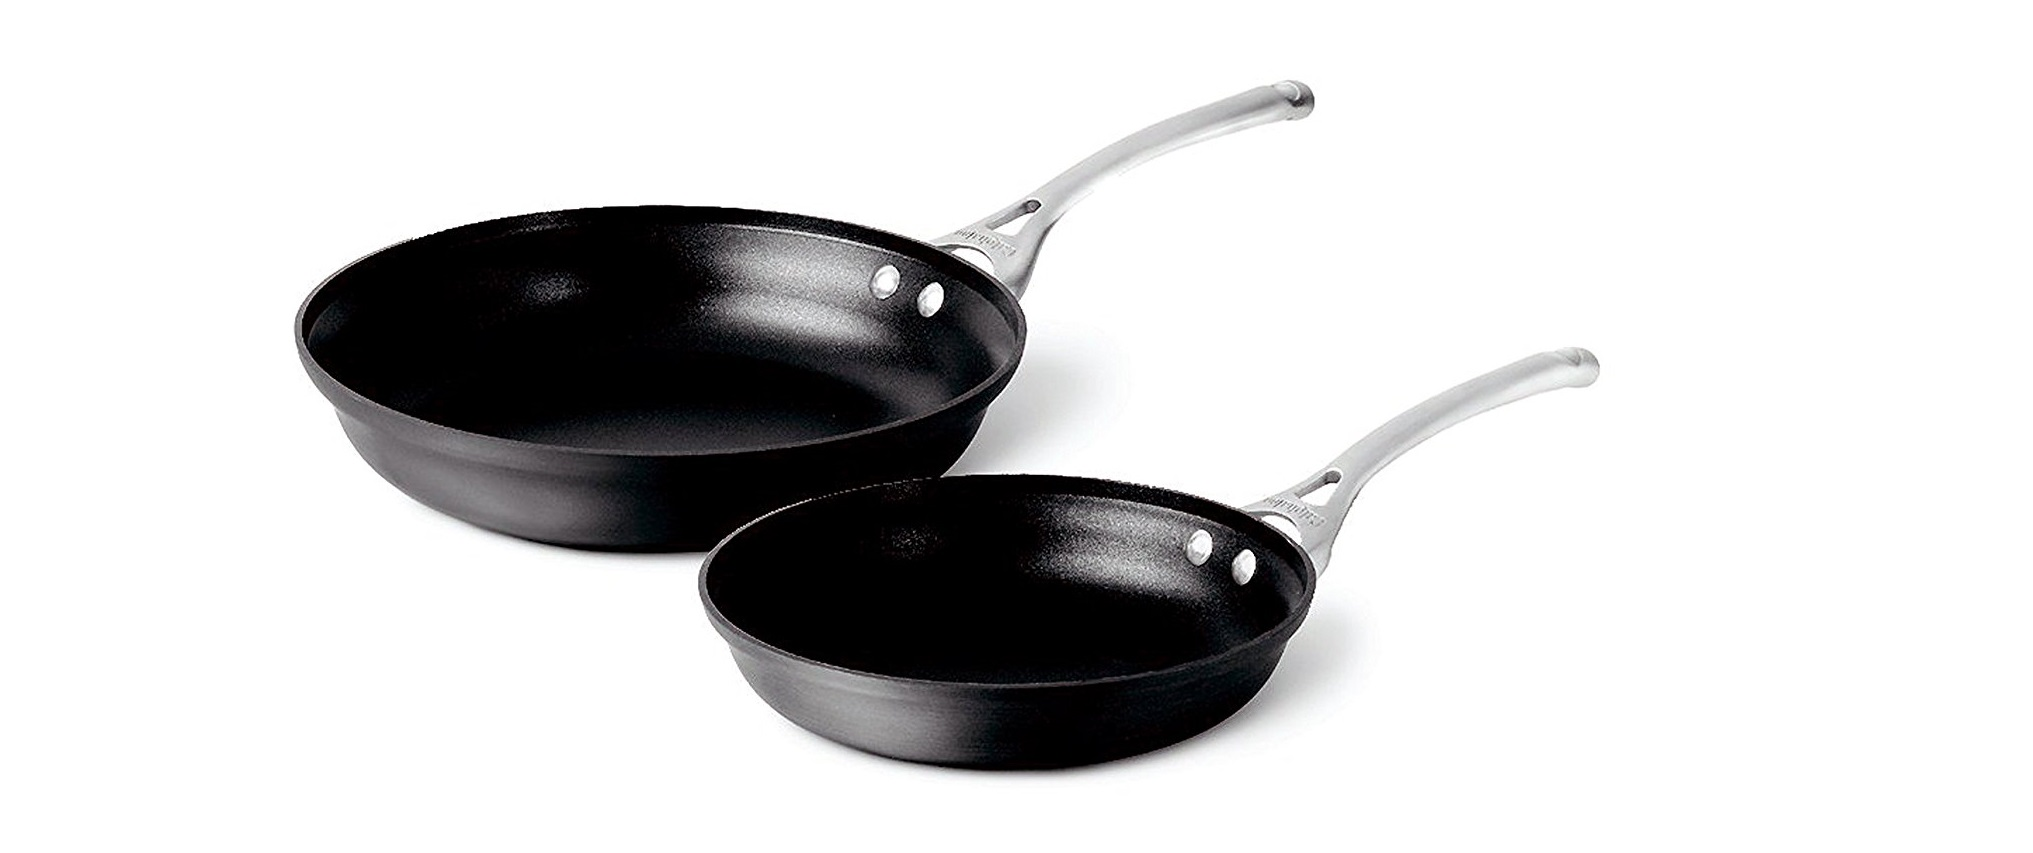 Top 10 Best Crepe Pans in 2018